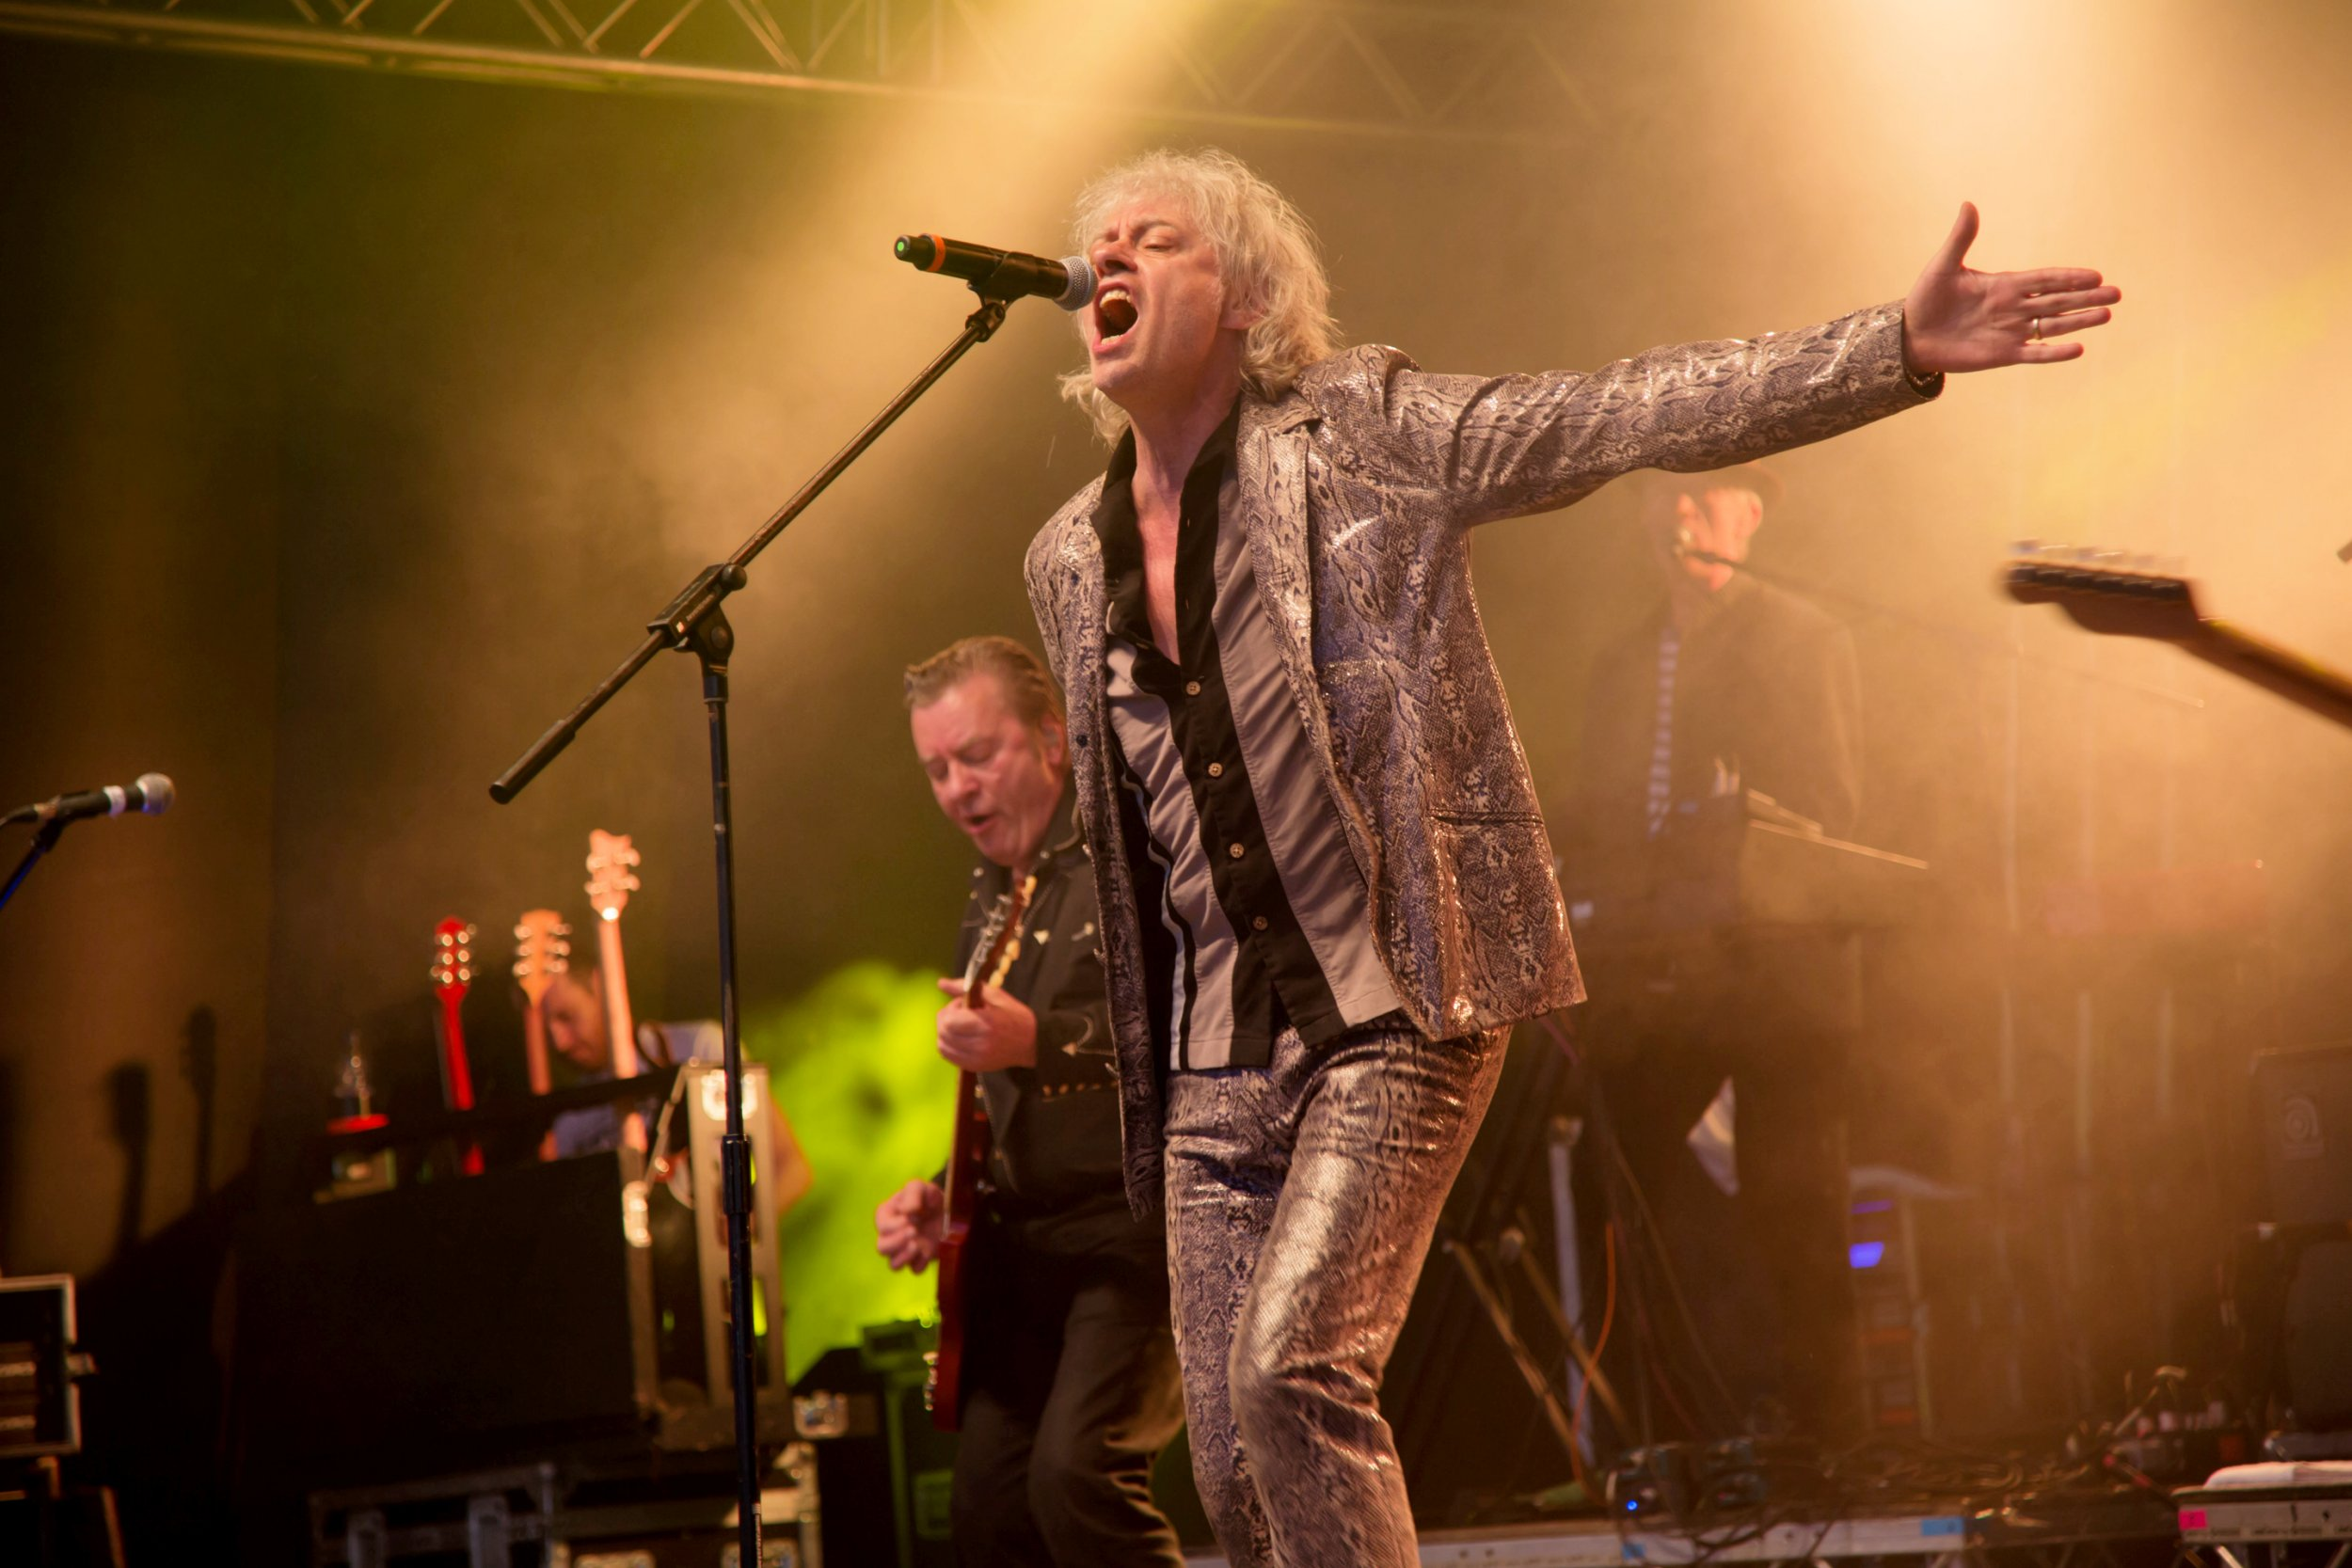 """Bob Geldof and the Boomtown Rats perform at the Brentwood Festival, 2016. See Masons copy MNGELDOF: Hundreds of fans walked out of a festival as millionaire singer Bob Geldof launched a foul-mouthed rant at them - for wearing Primark clothes. The Boomtown Rats big mouth also stopped after one song and insulted the family event for being so tame. The band had been booked to headline the two-day Brentwood Festival in Essex last weekend. But Geldof started swearing at soon as they came on stage, shouting: """"We don't do Abba. We don't do Robbie f*****g Williams."""